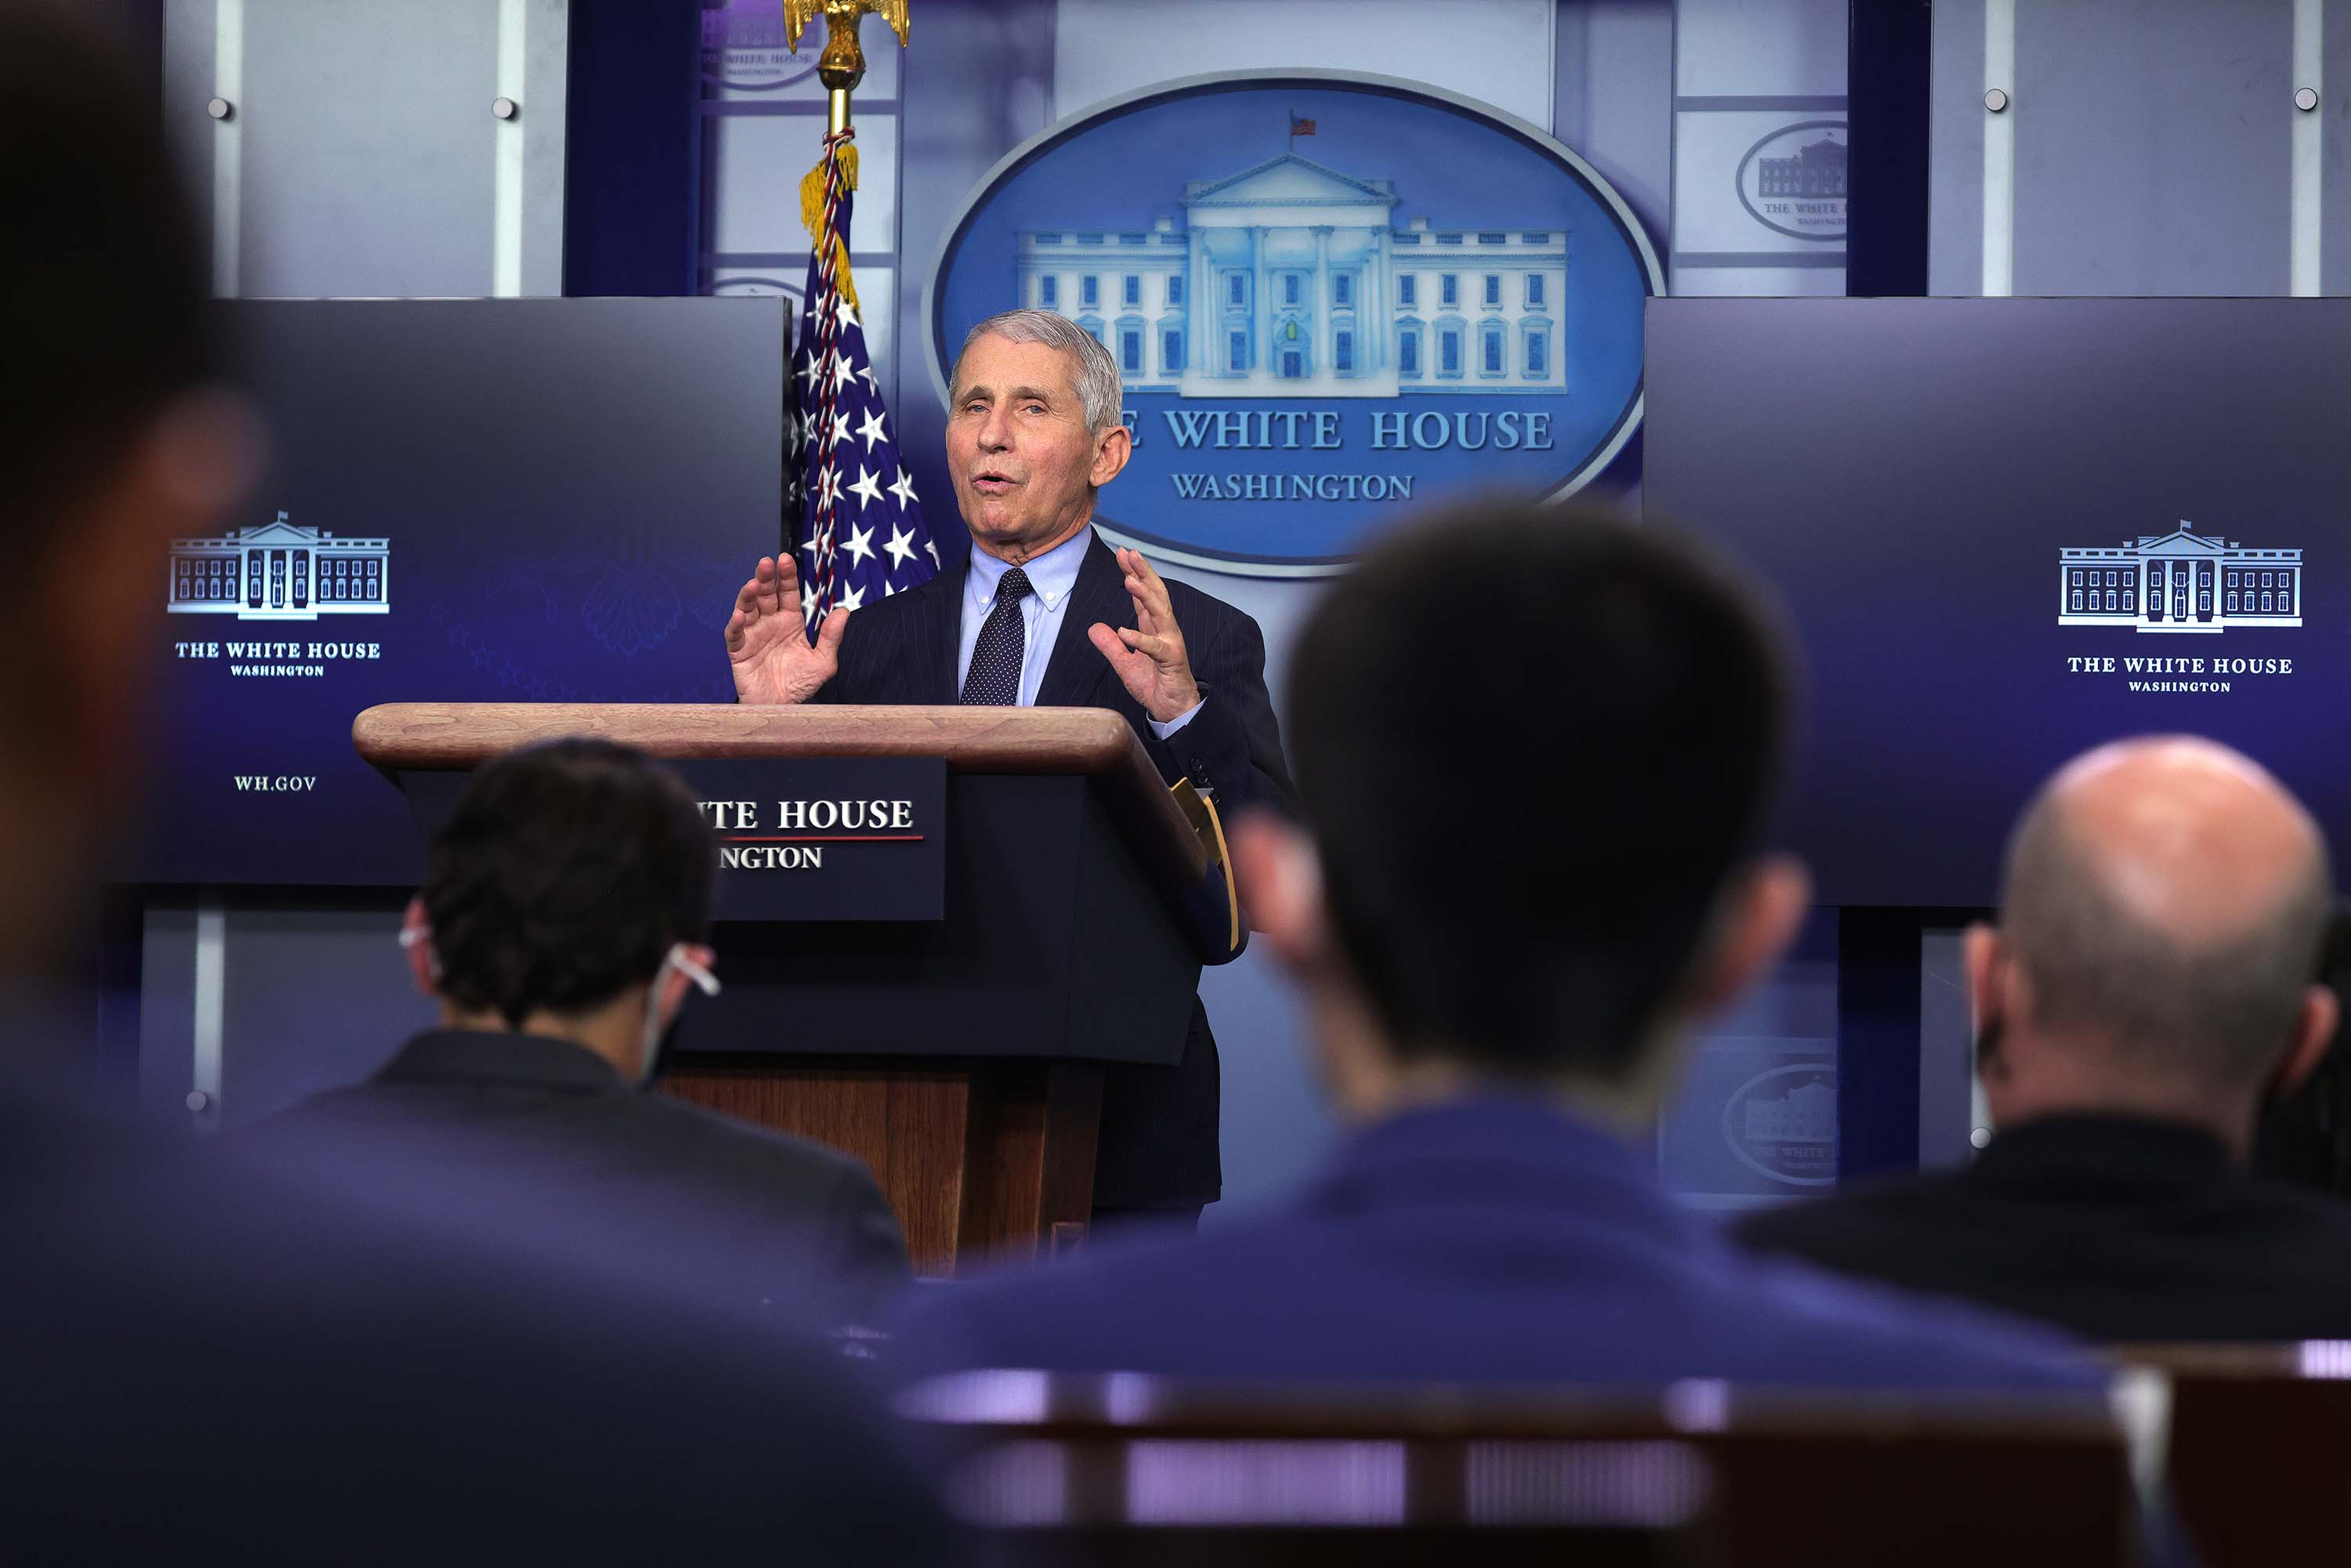 Dr. Anthony Fauci, Director of the National Institute of Allergy and Infectious Diseases, speaks during a White House press briefing at the White House in Washington, DC, on January 21.